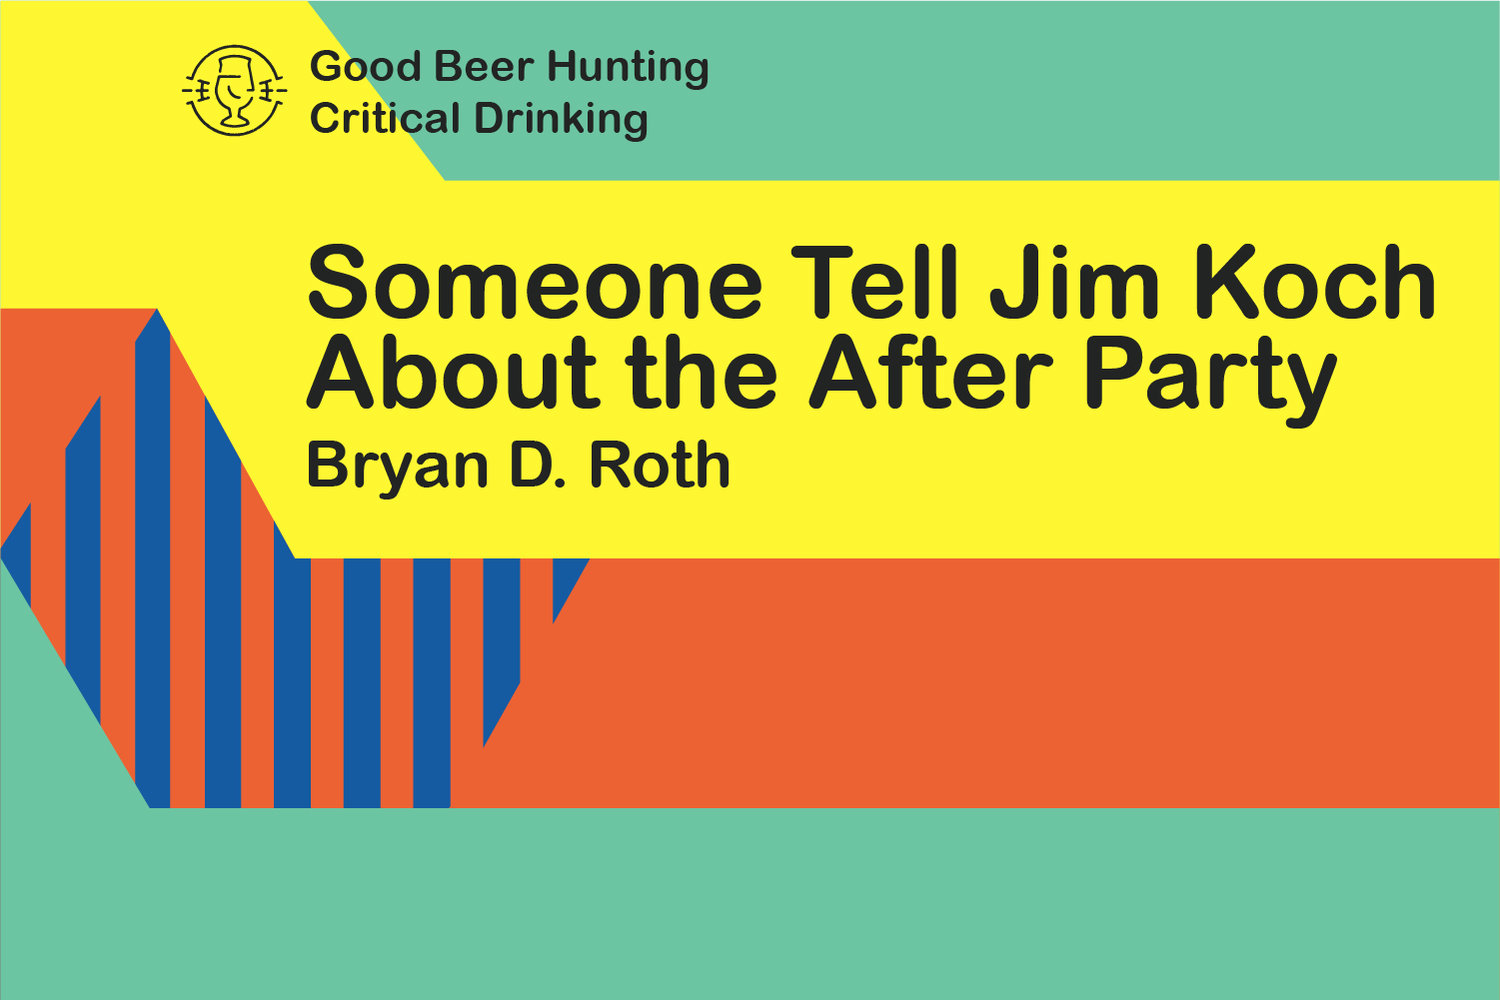 Someone Tell Jim Koch About The After Party Good Beer Hunting